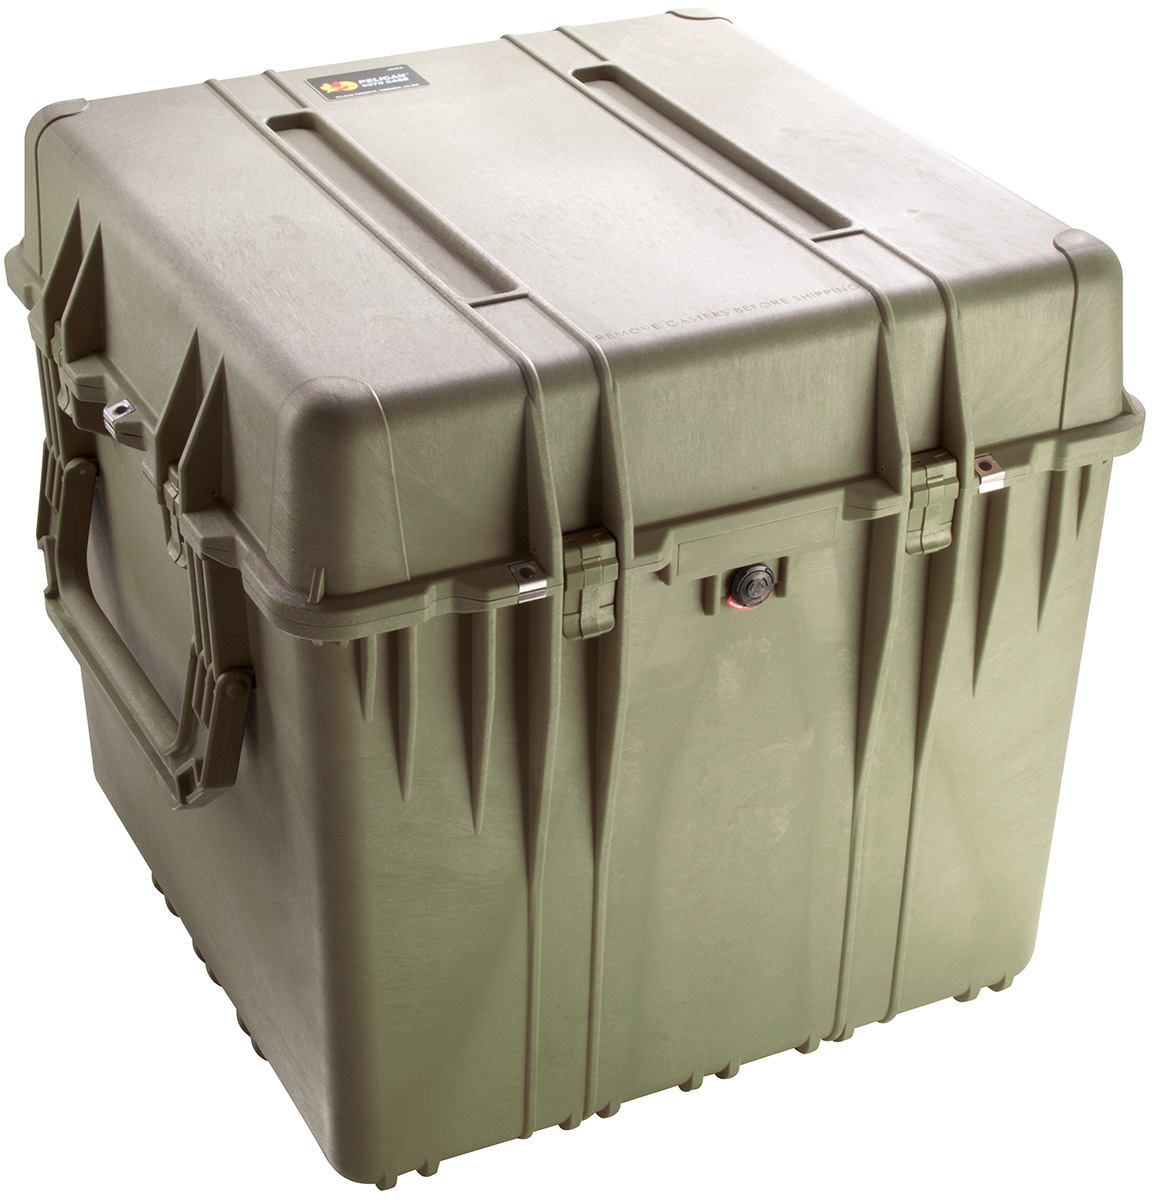 pelican peli products 0370 large box hard transport case